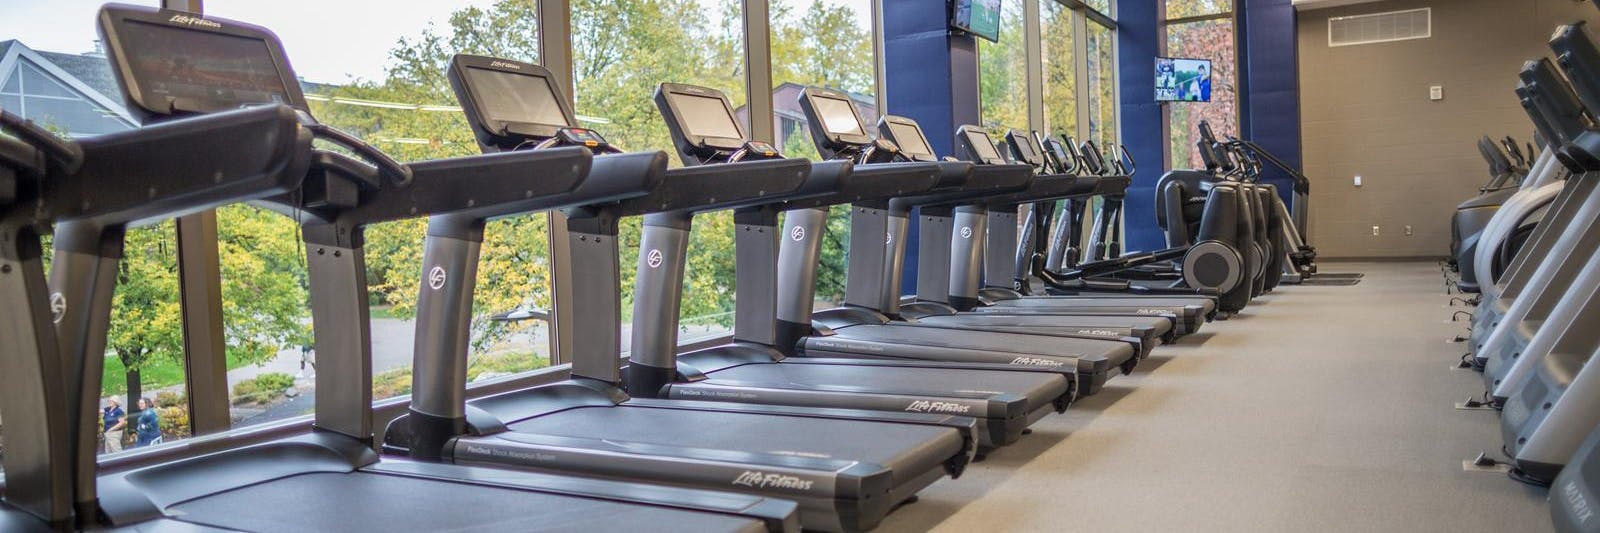 Wellness Center Empty Treadmills